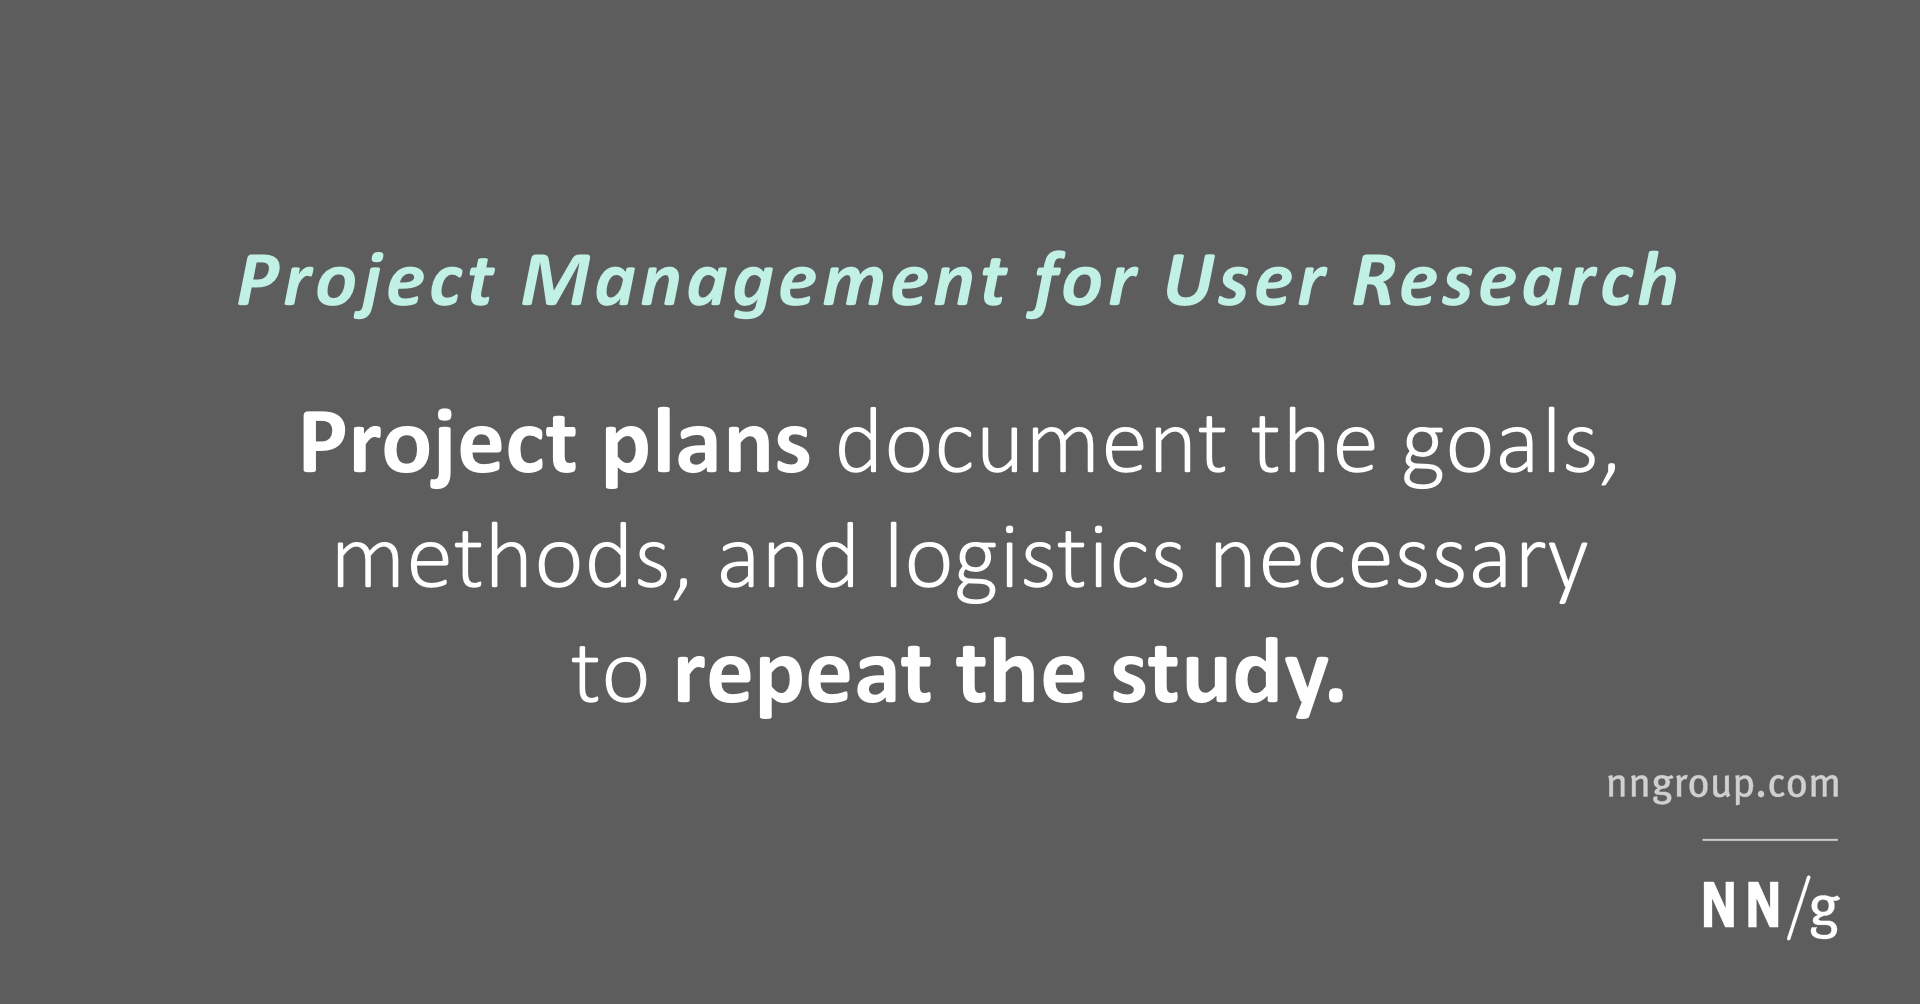 Project Management for User Research: The Plan